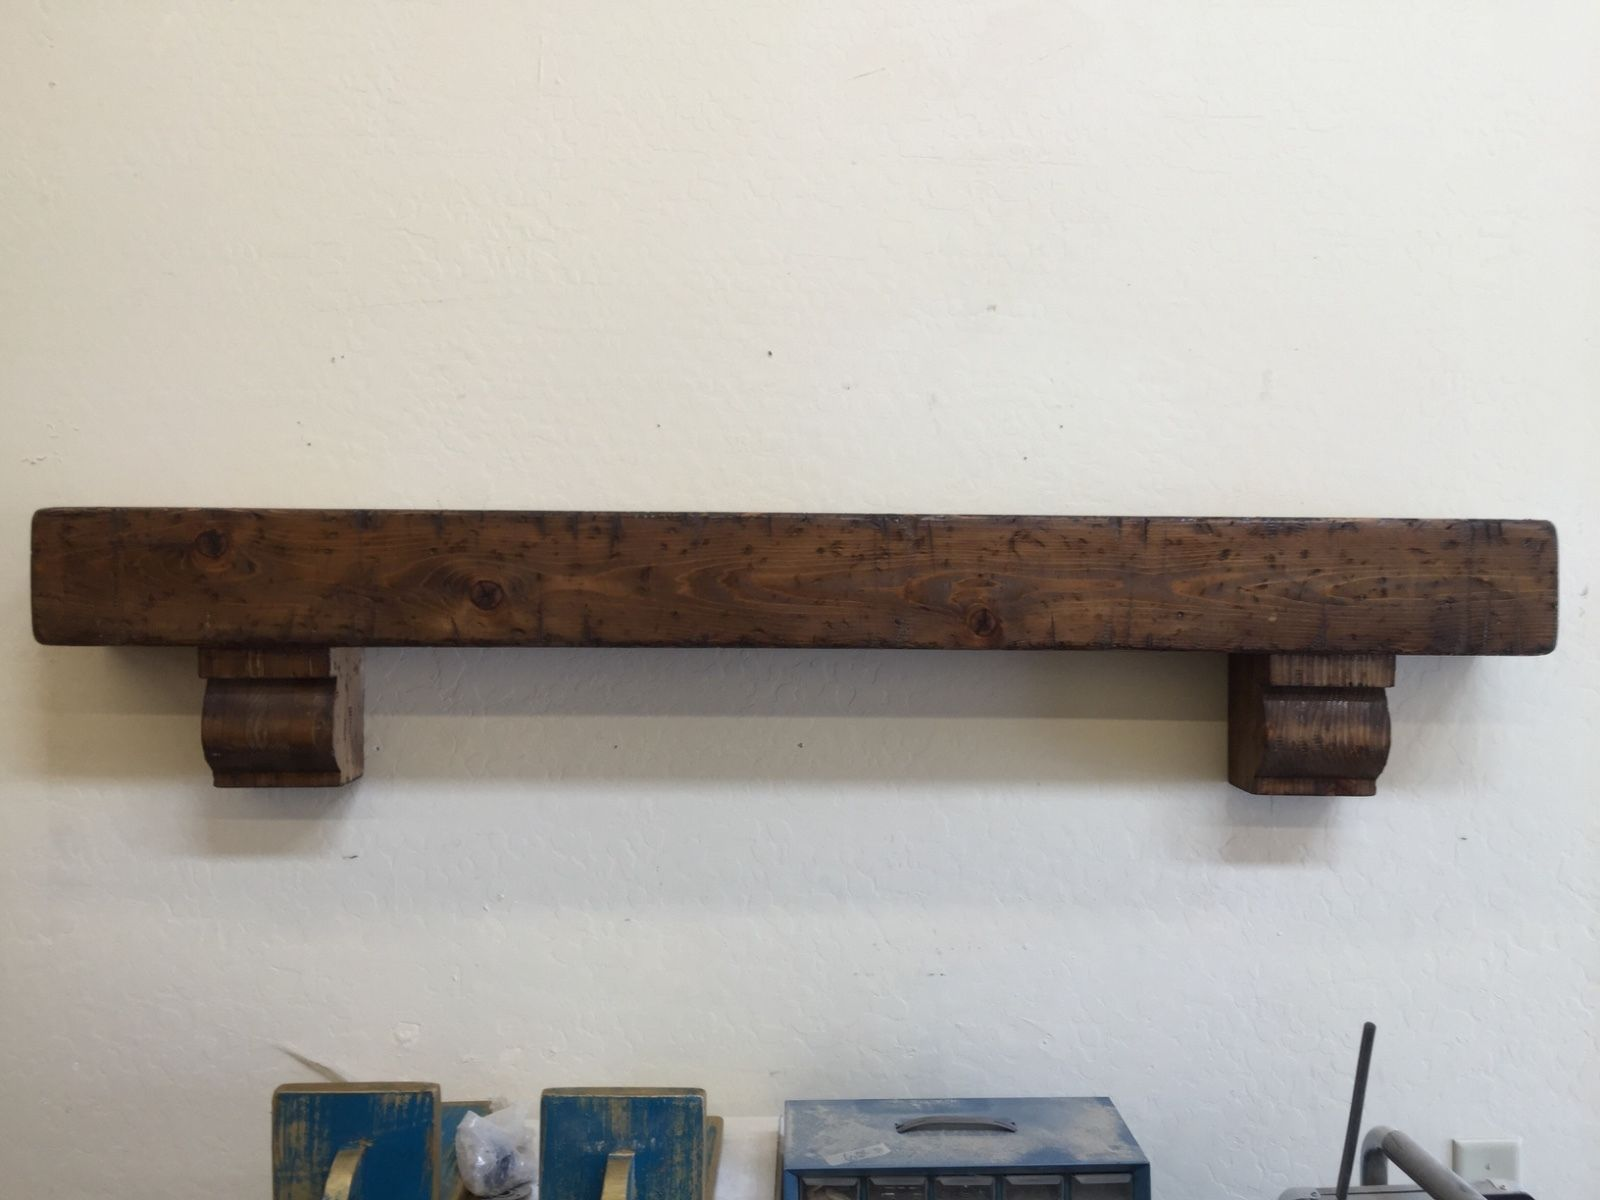 iron brackets for barn wood beam fireplace mantle supports straps